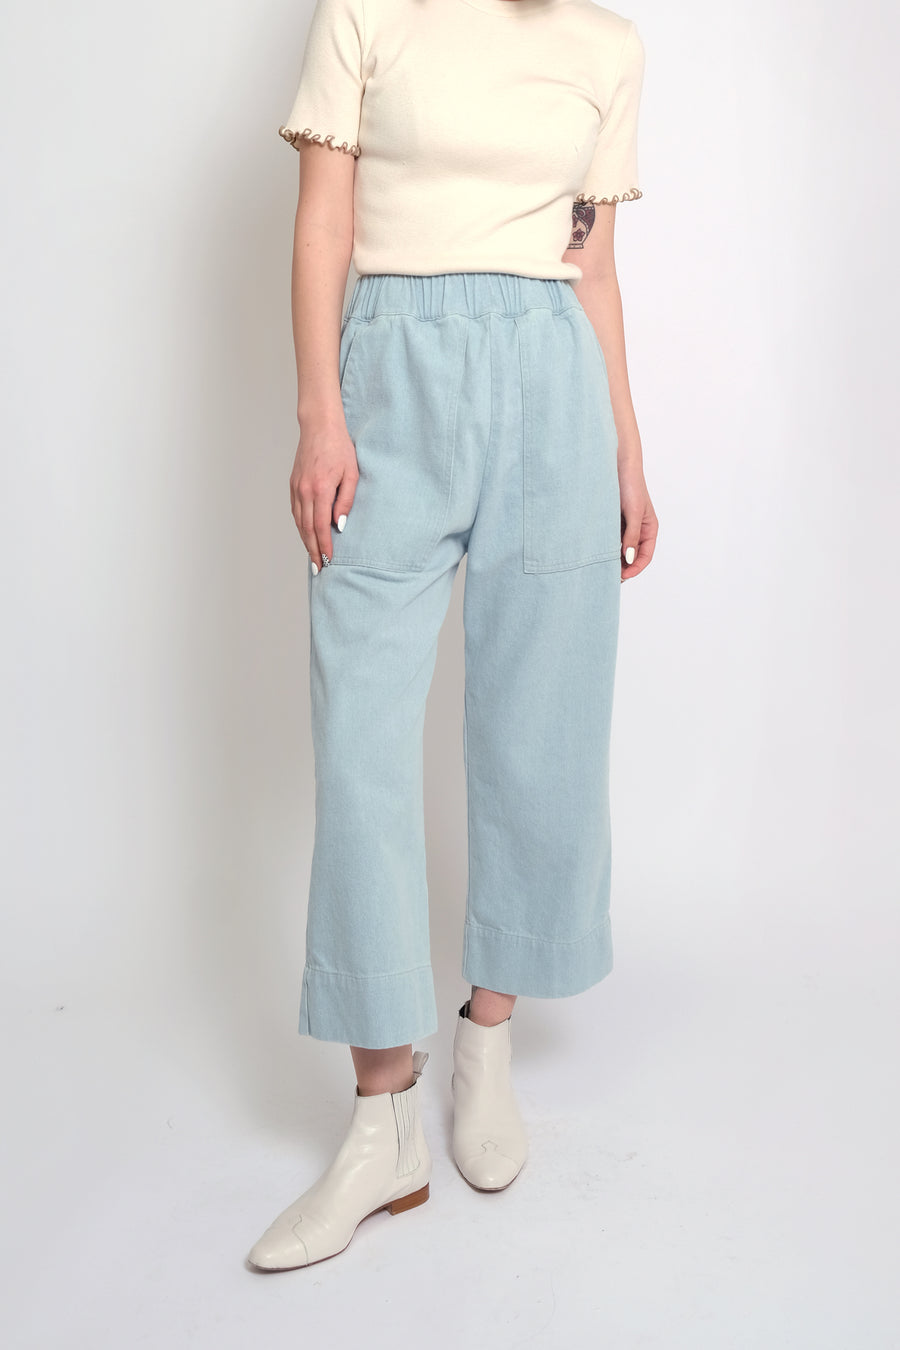 Sky Blue Denim Utility Pant